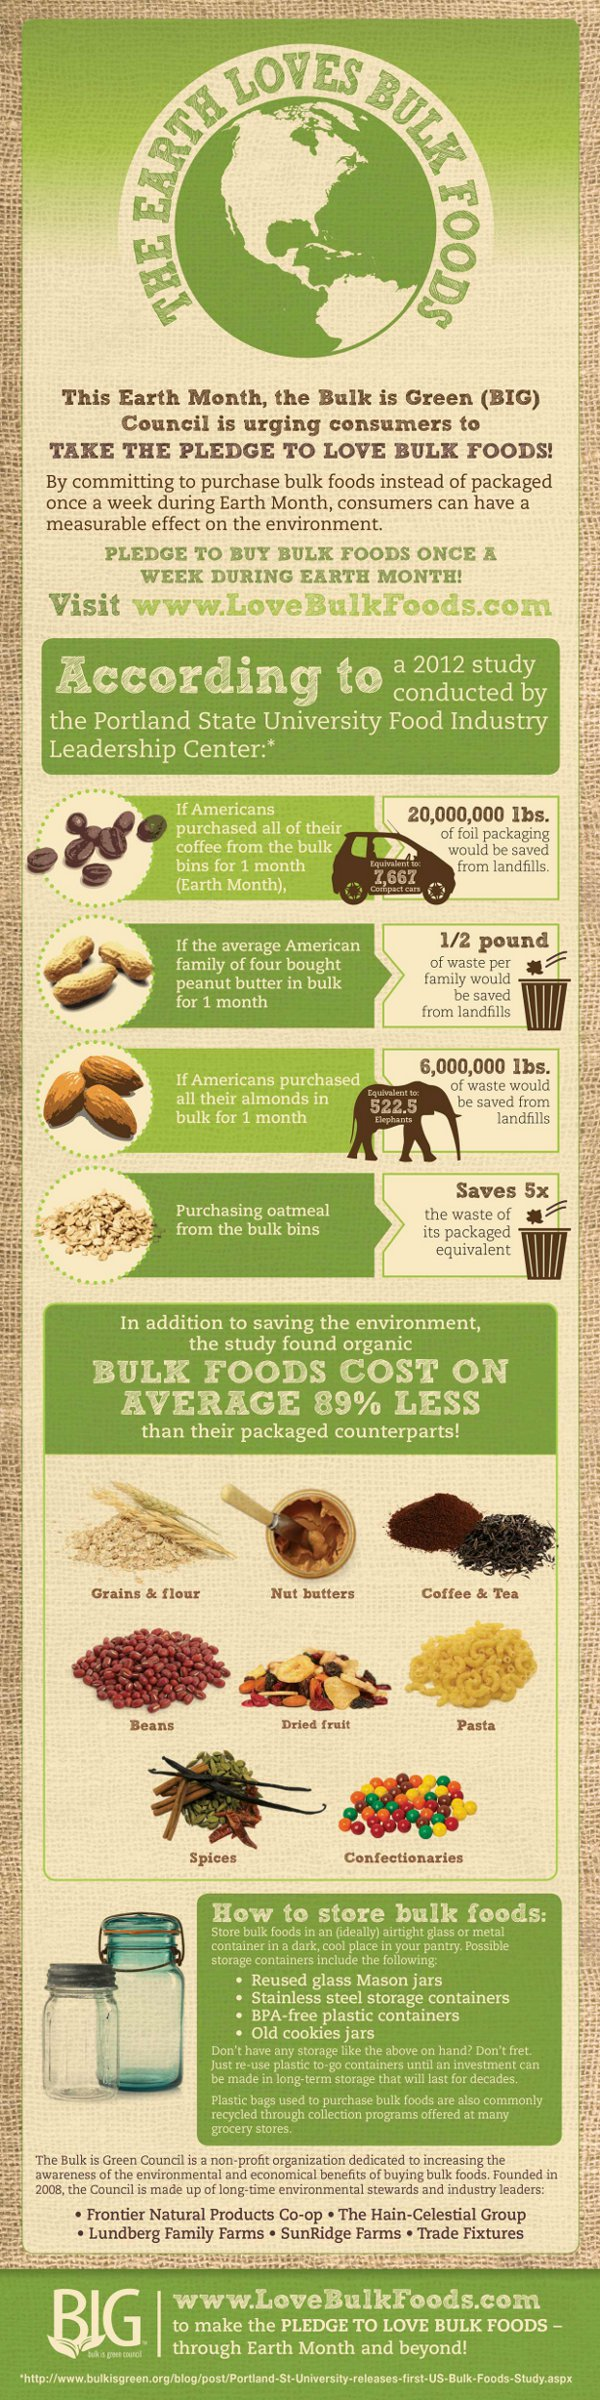 Benefits-of-Buying-in-Bulk-Infographic